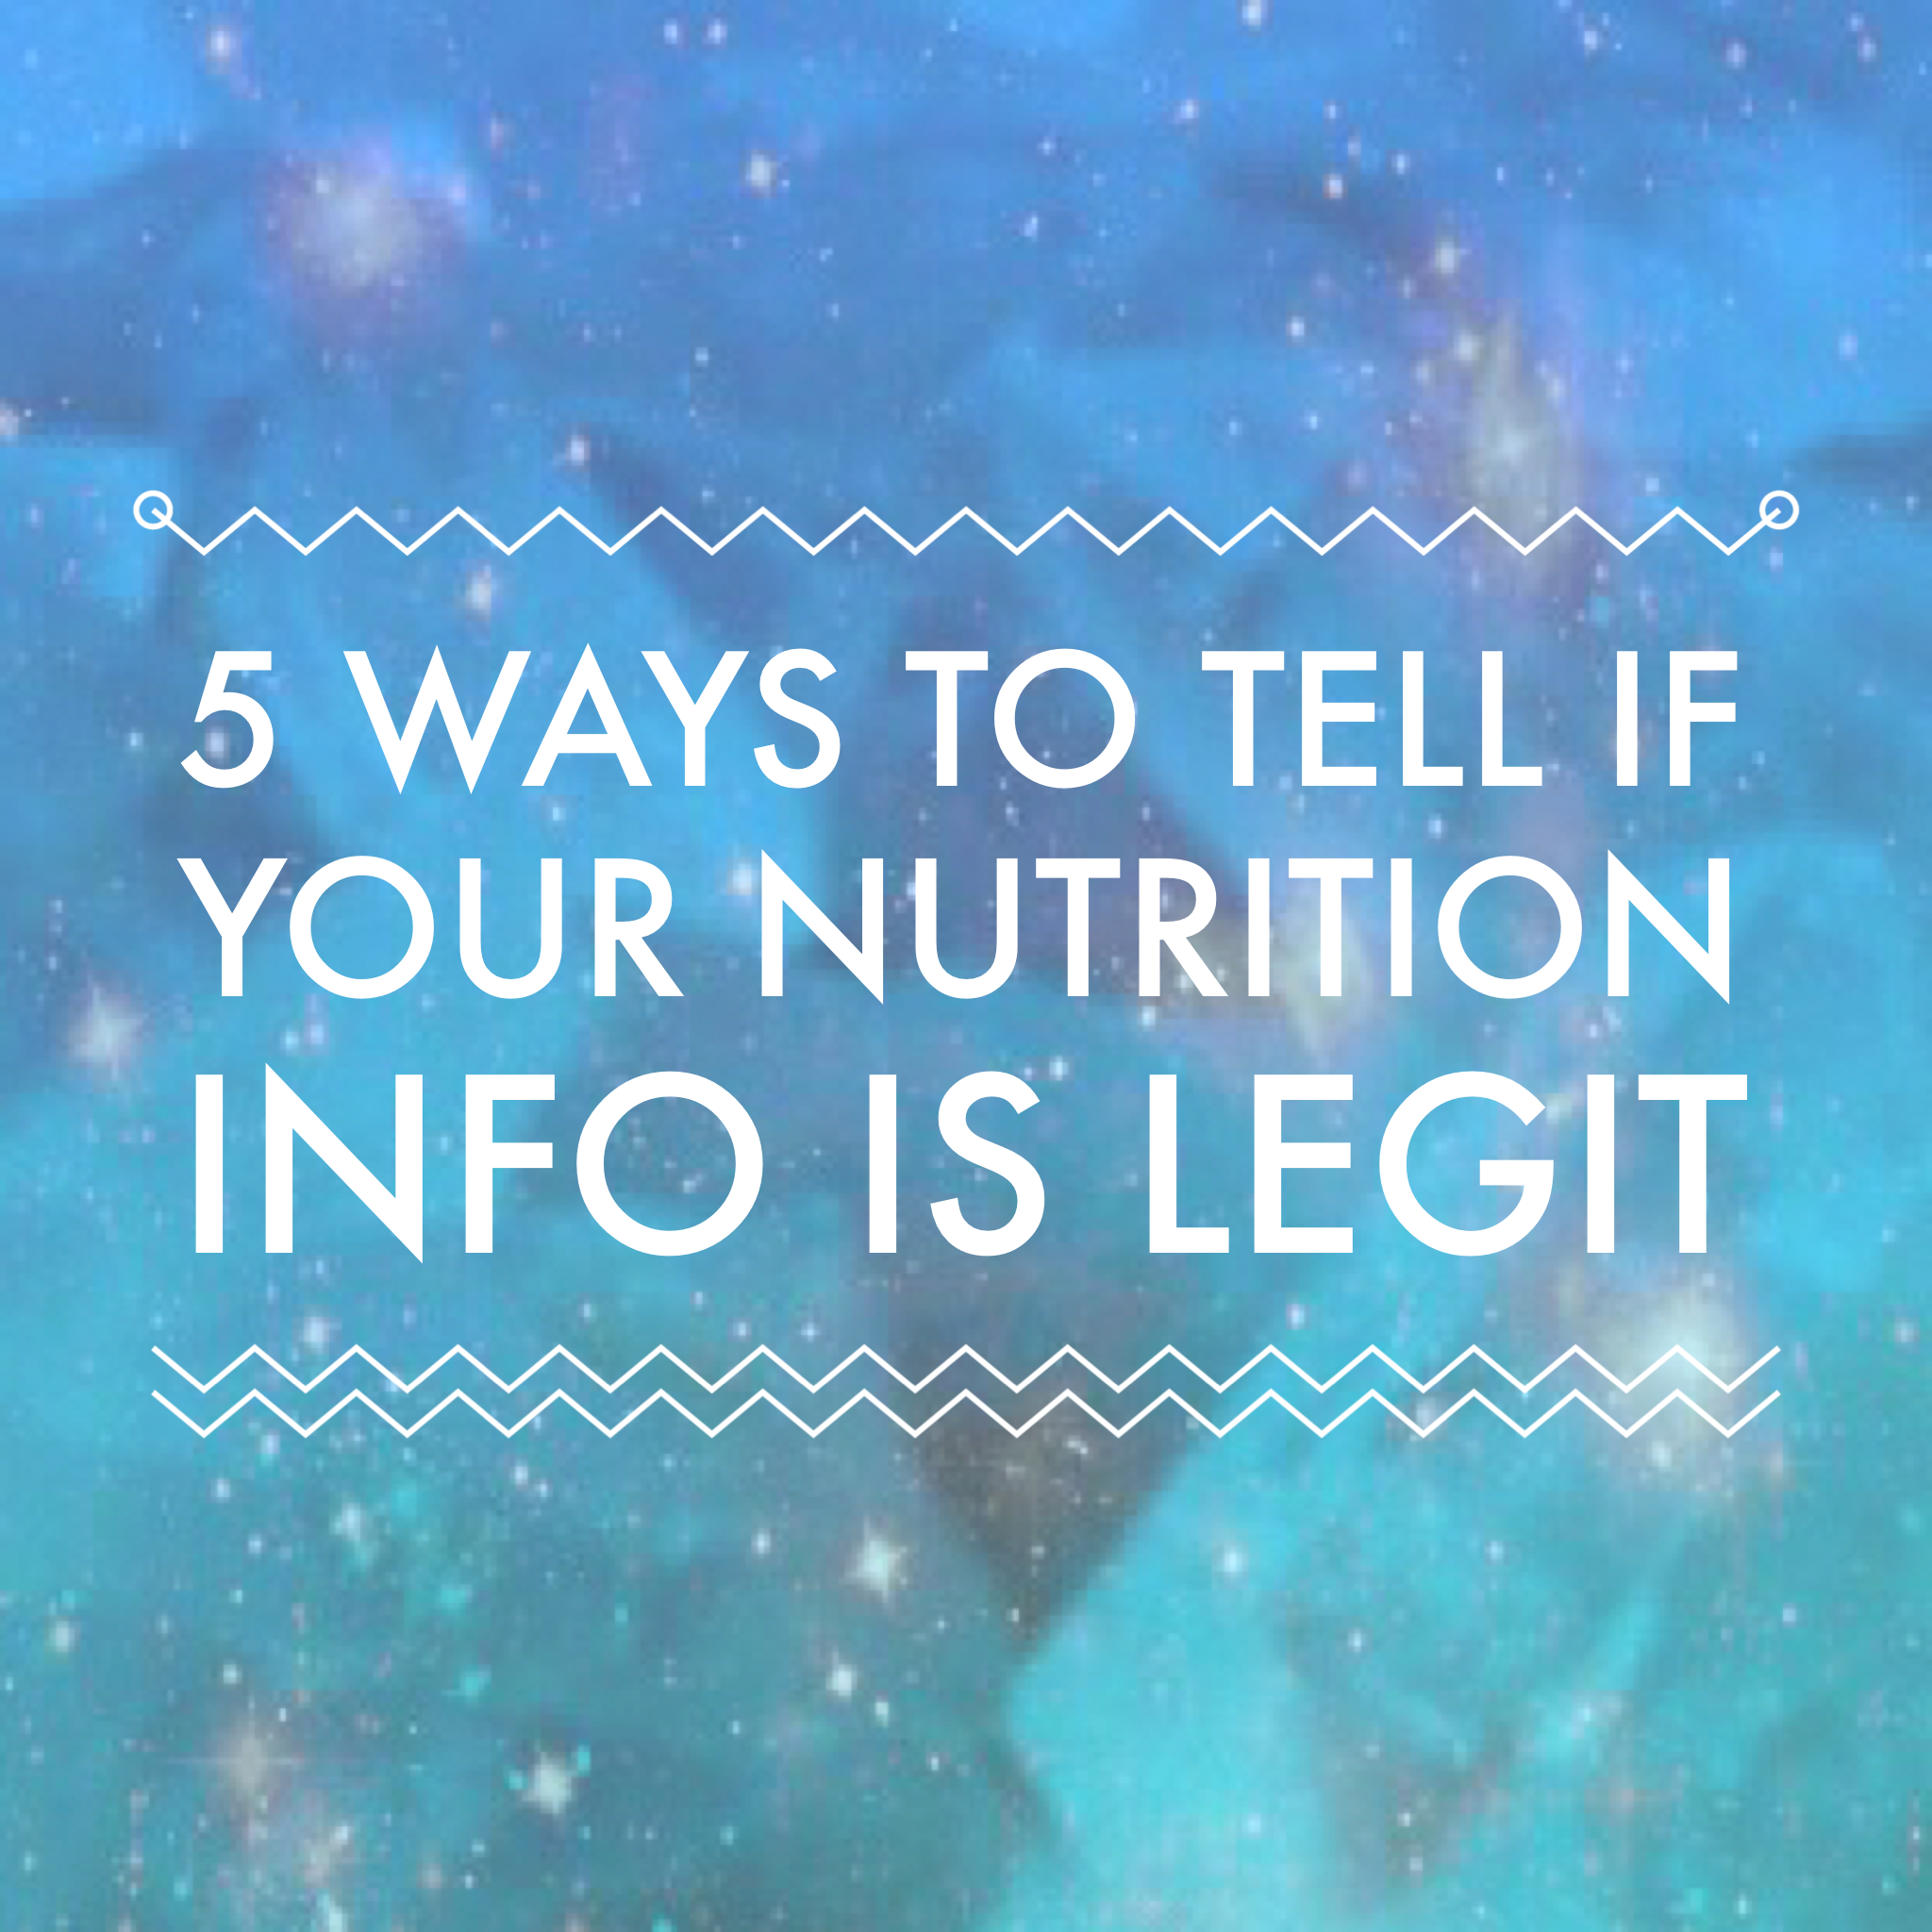 Is the nutrition info legit? 5 simple ways to know